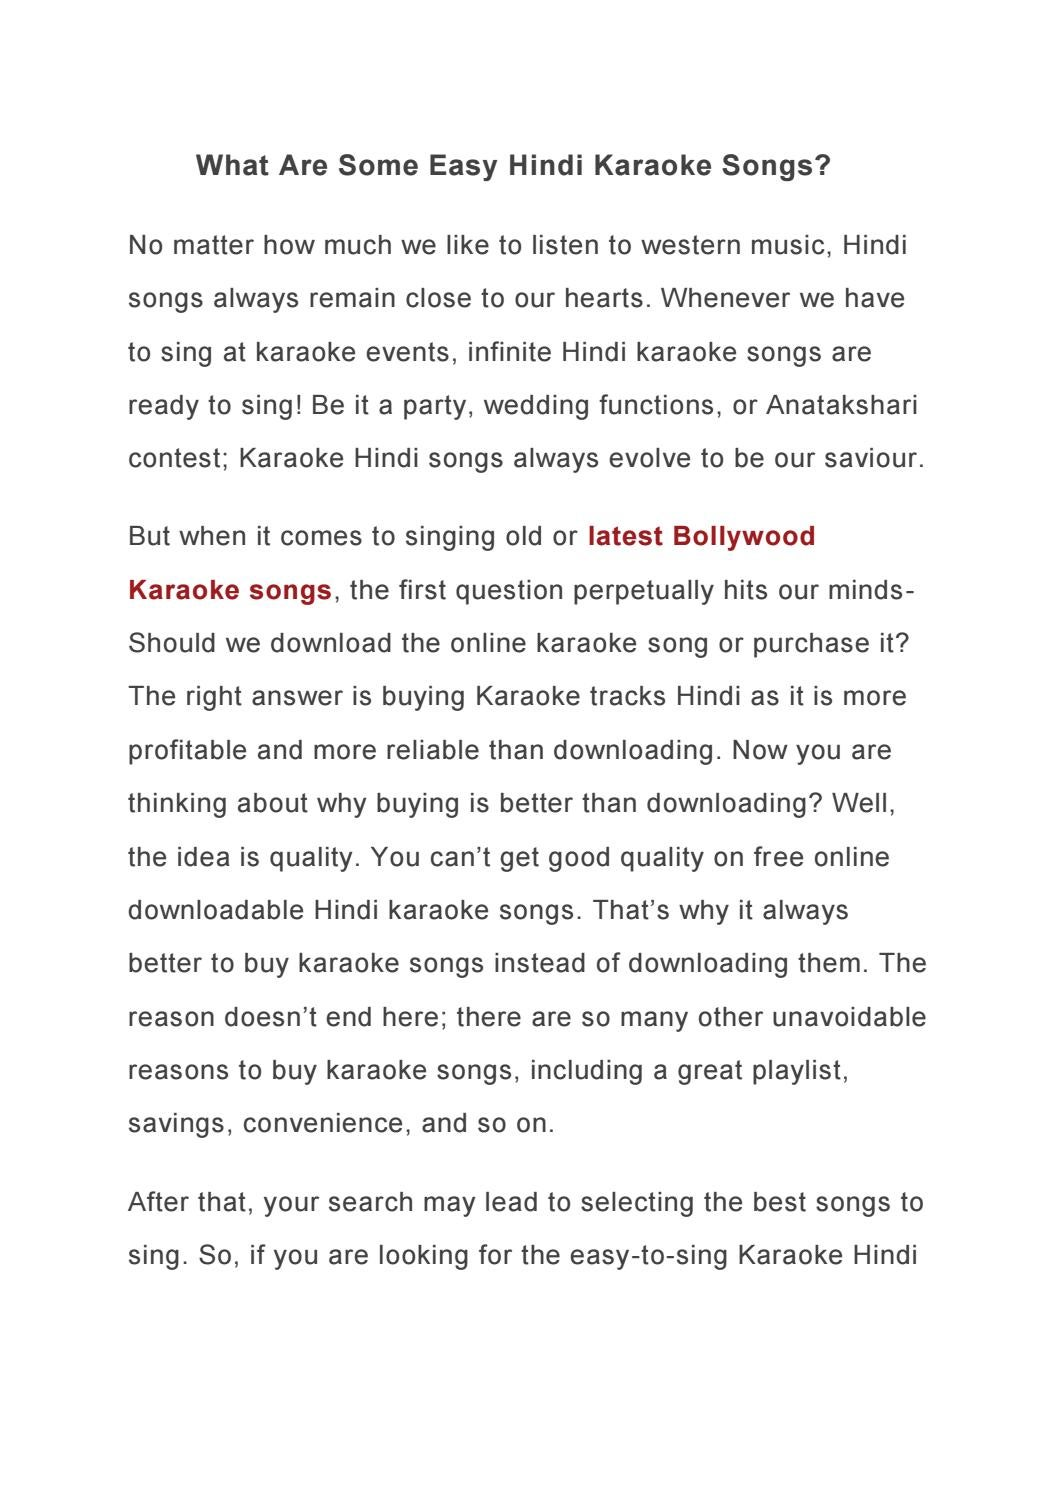 What Are Some Easy Hindi Karaoke Songs By Hindi Karaoke Shop Issuu Try not to sing along challenge try to watch this without singing or dancing challenge if you sing or dance you lose. what are some easy hindi karaoke songs